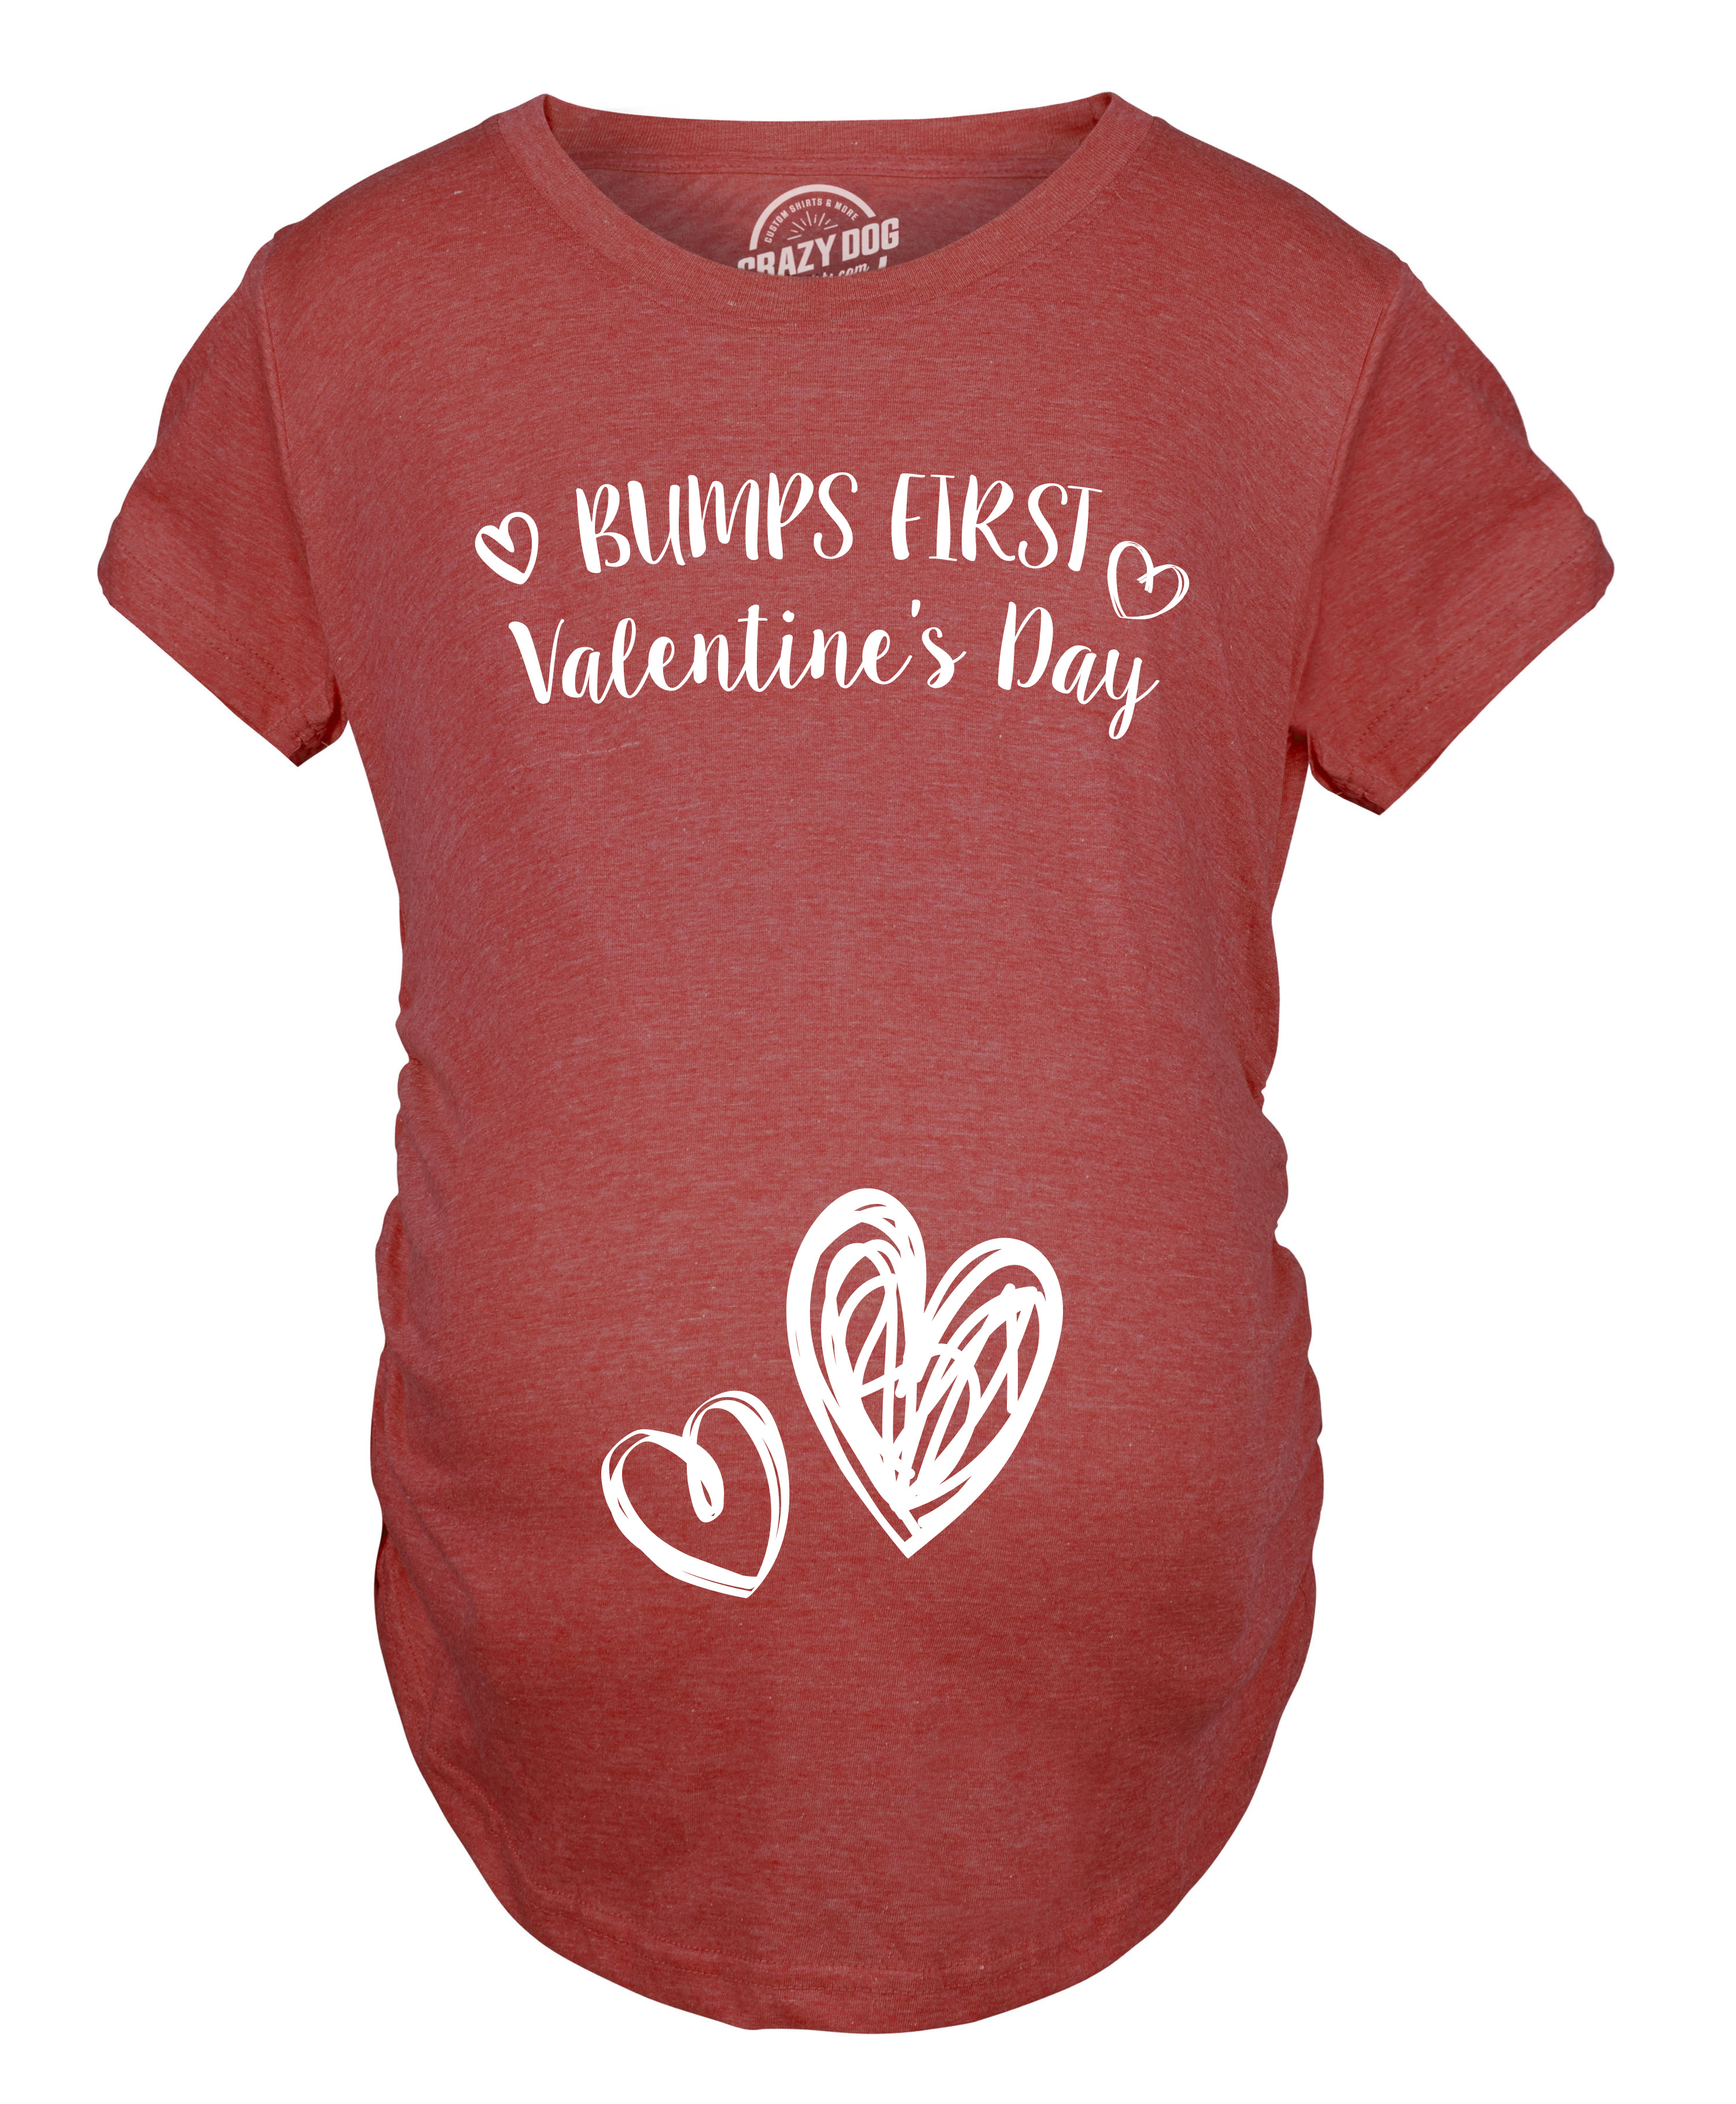 374b5219b994a Bumps First Valentine's Day Maternity Shirt Cute Adorable Baby Bump Tee -S